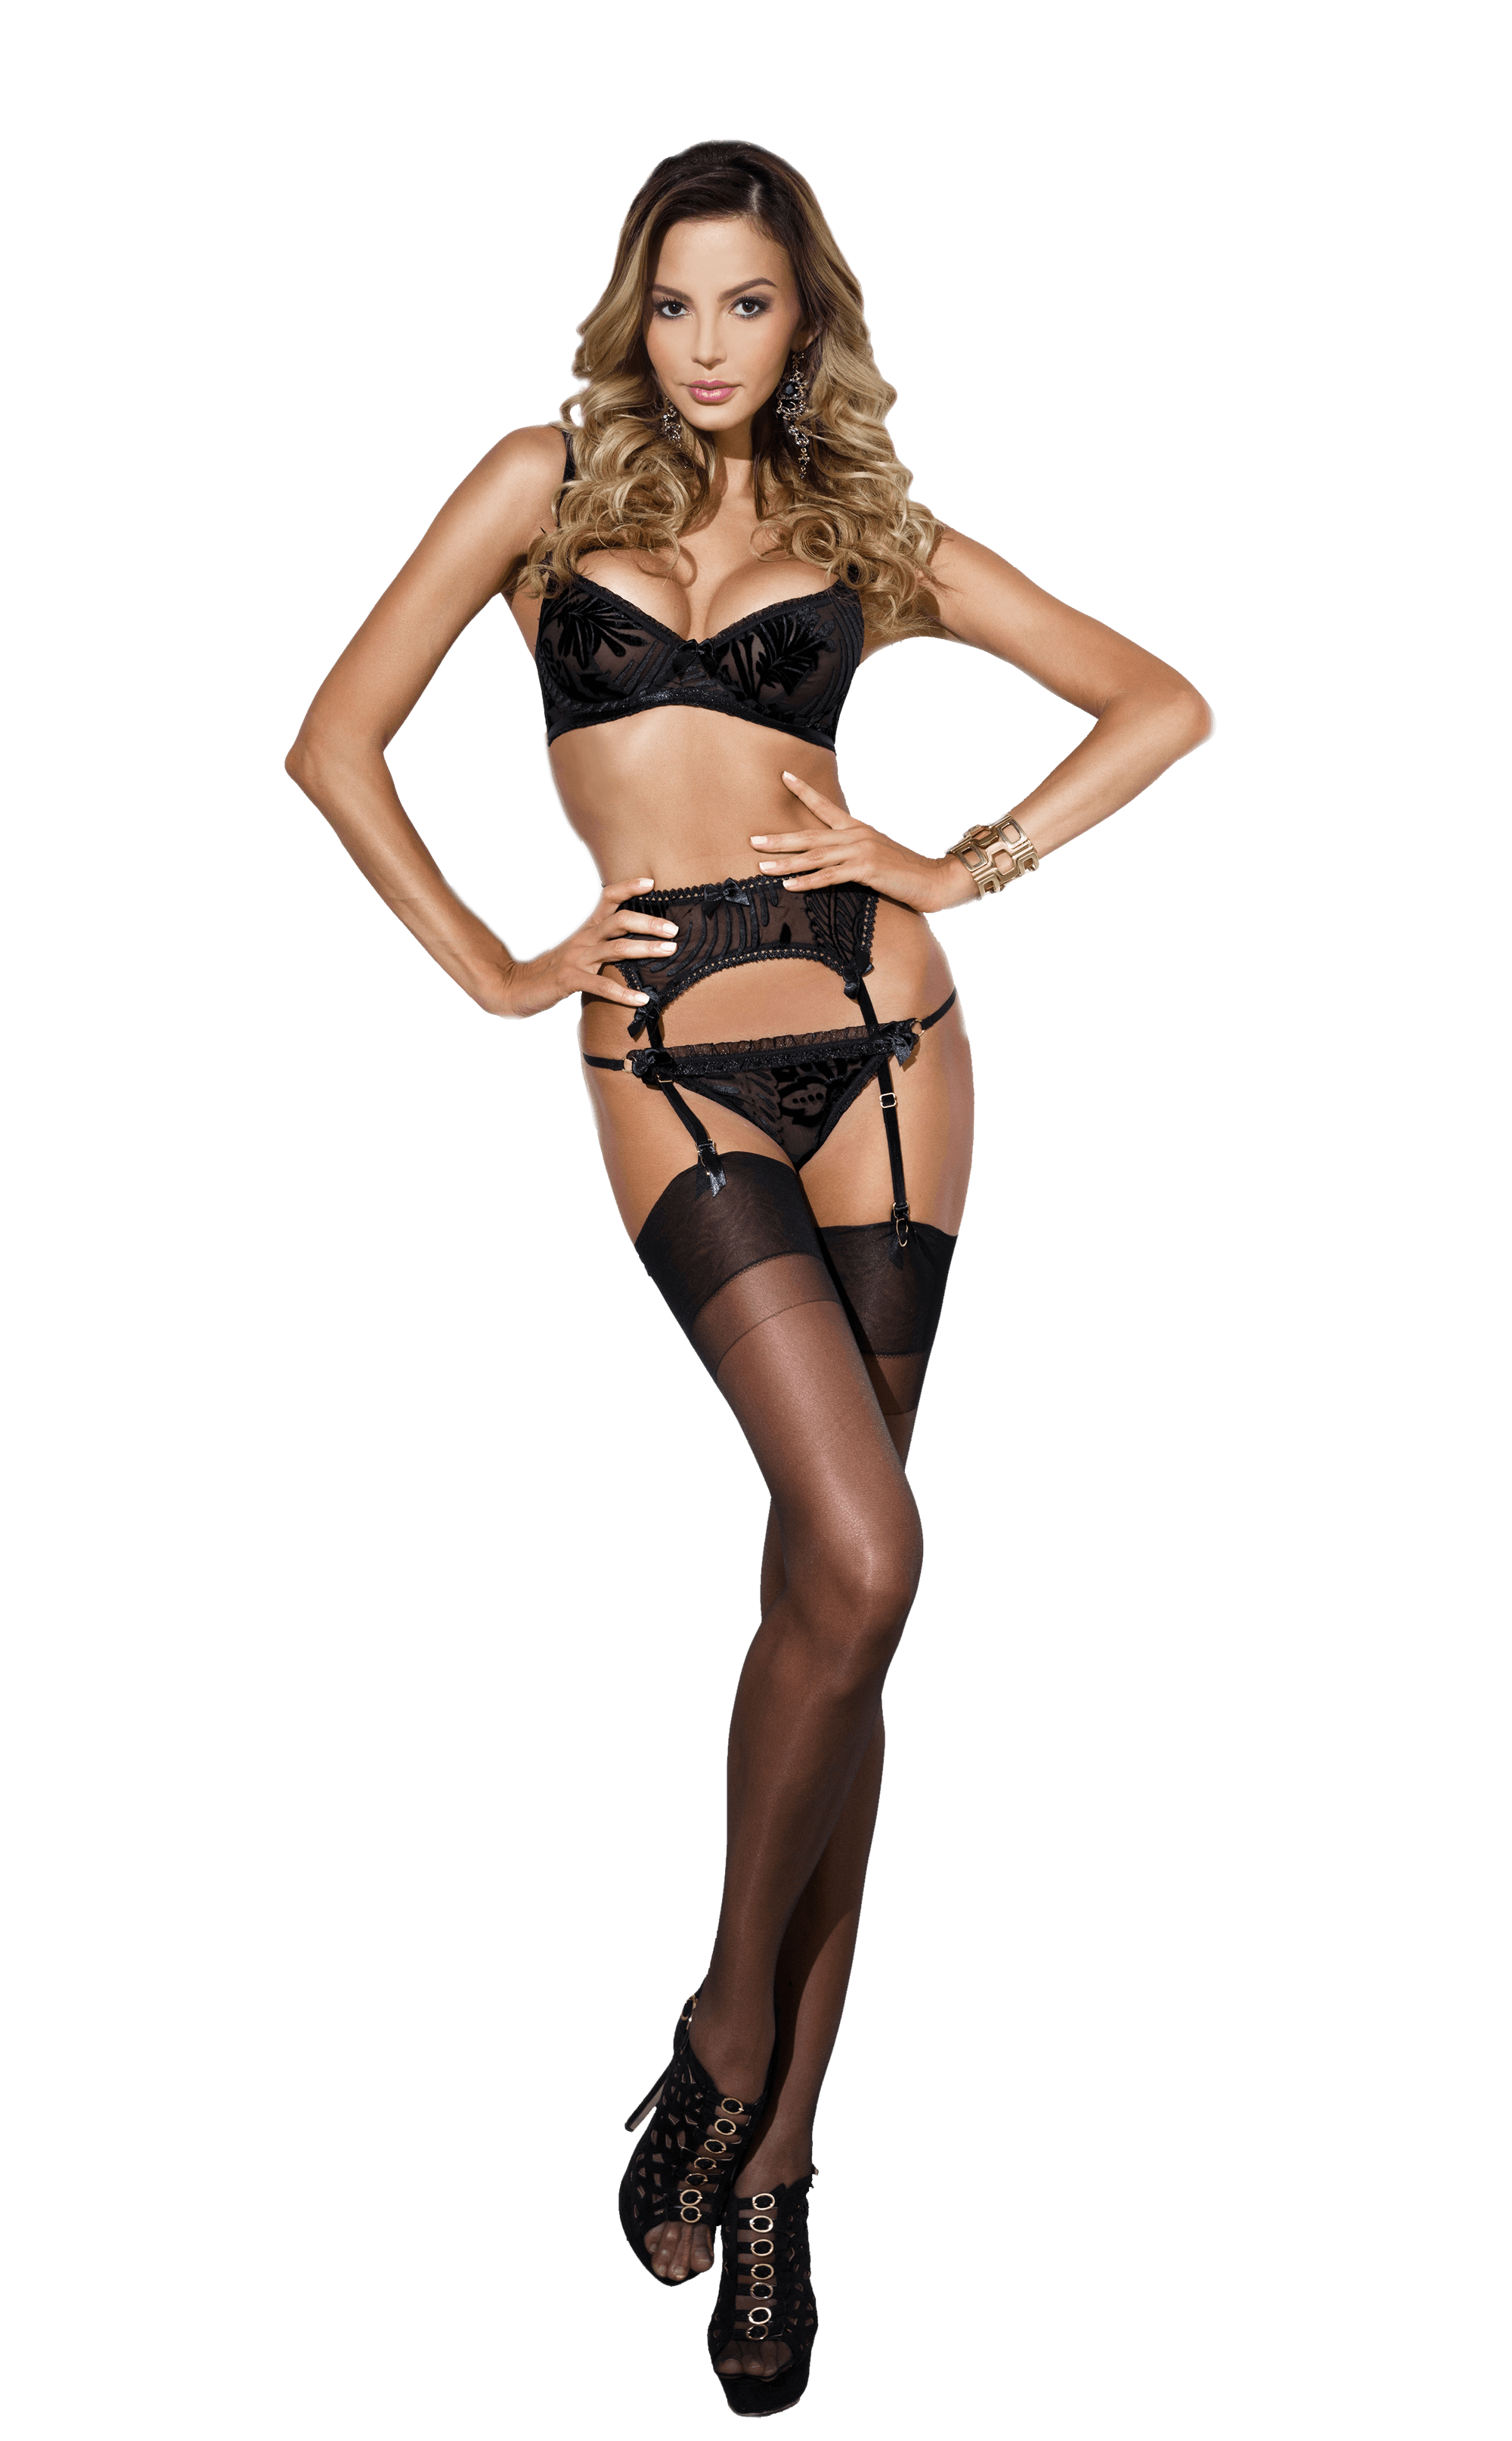 woman wearing a black lingerie with stockings